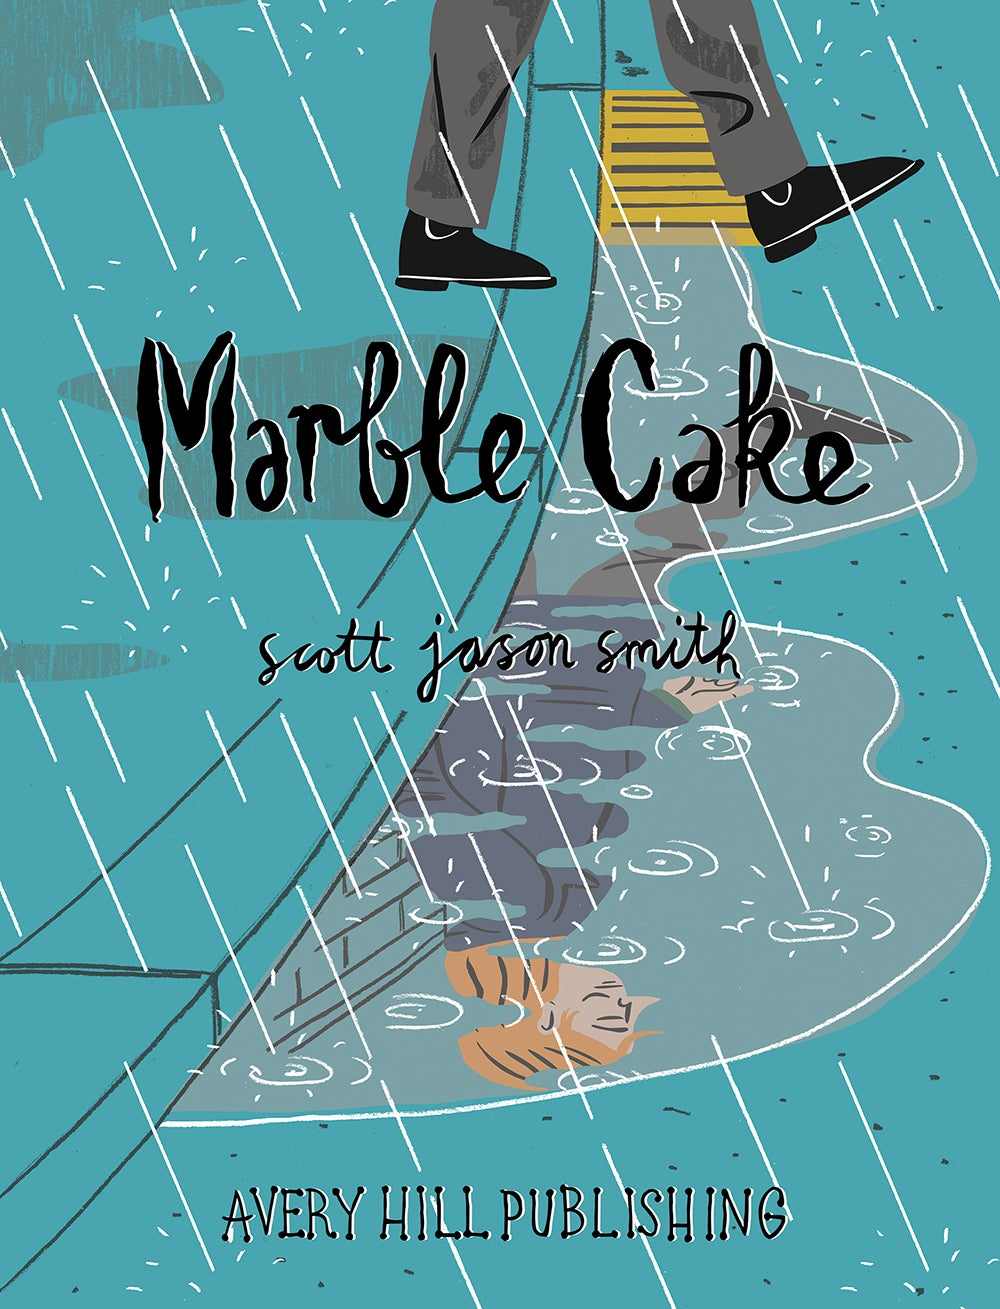 Marble Cake by Scott Jason Smith